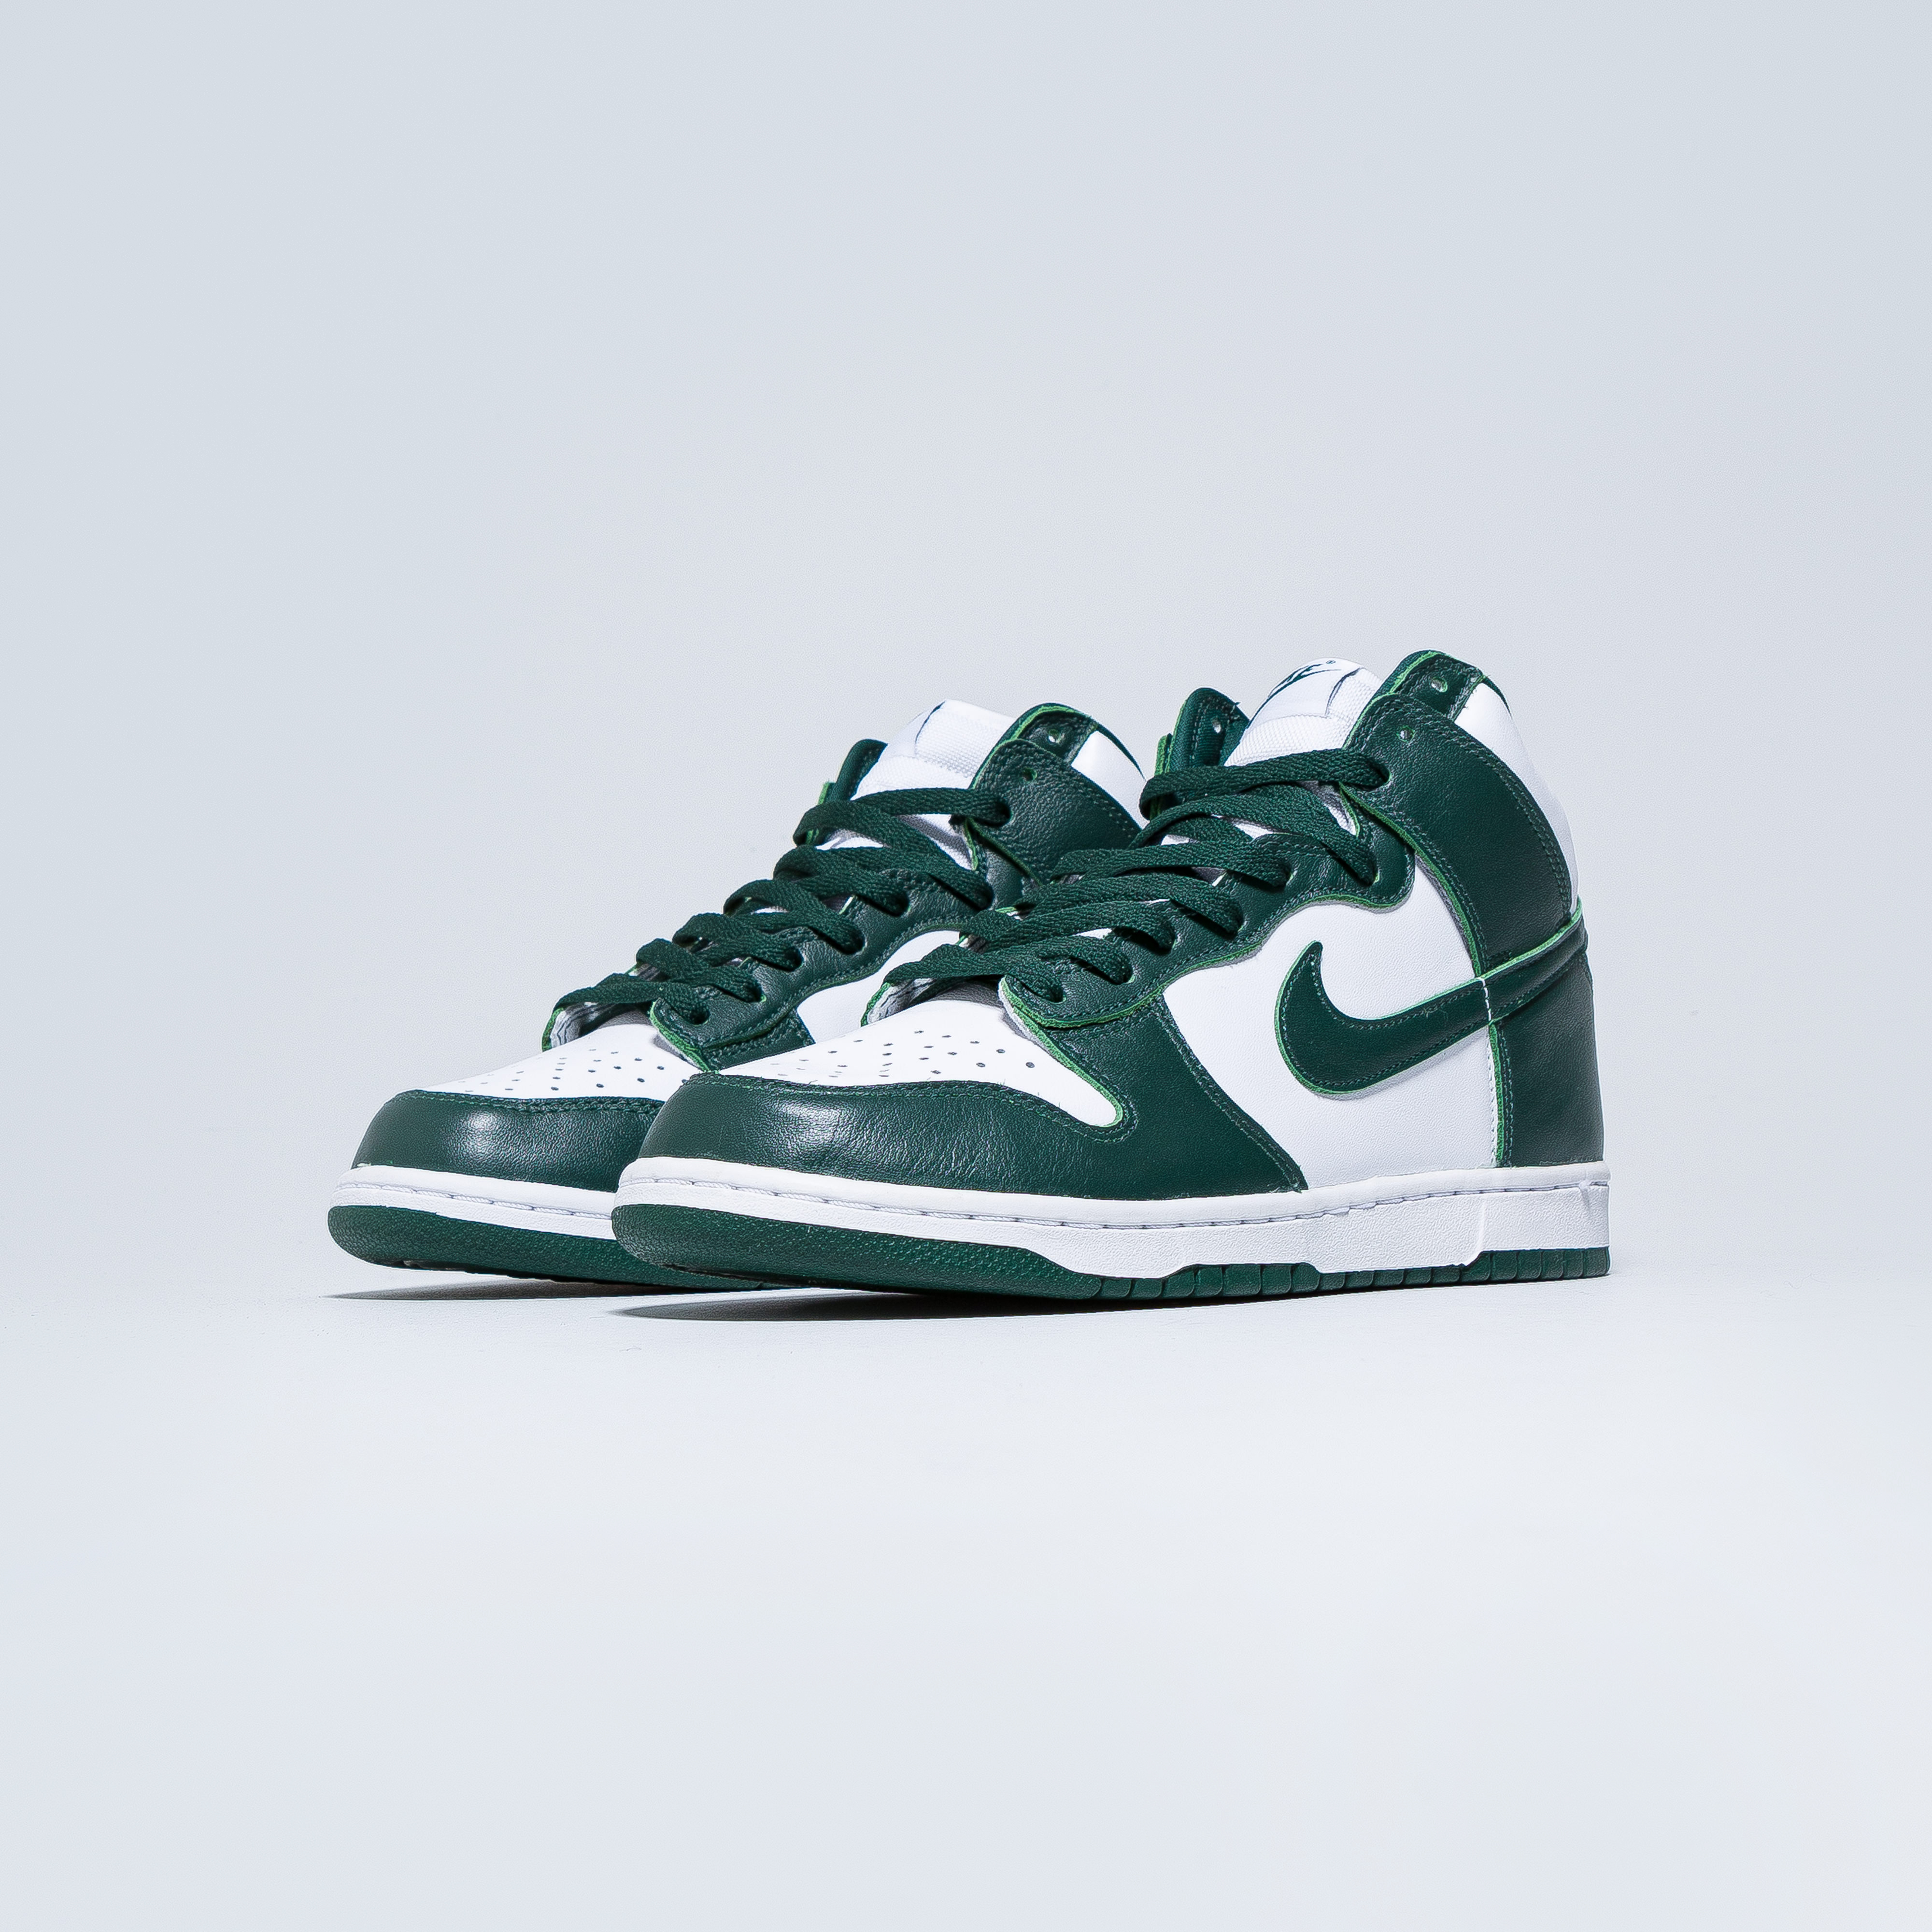 Nike - Dunk Hi SP - White/Pro Green-Pro Green - Up There